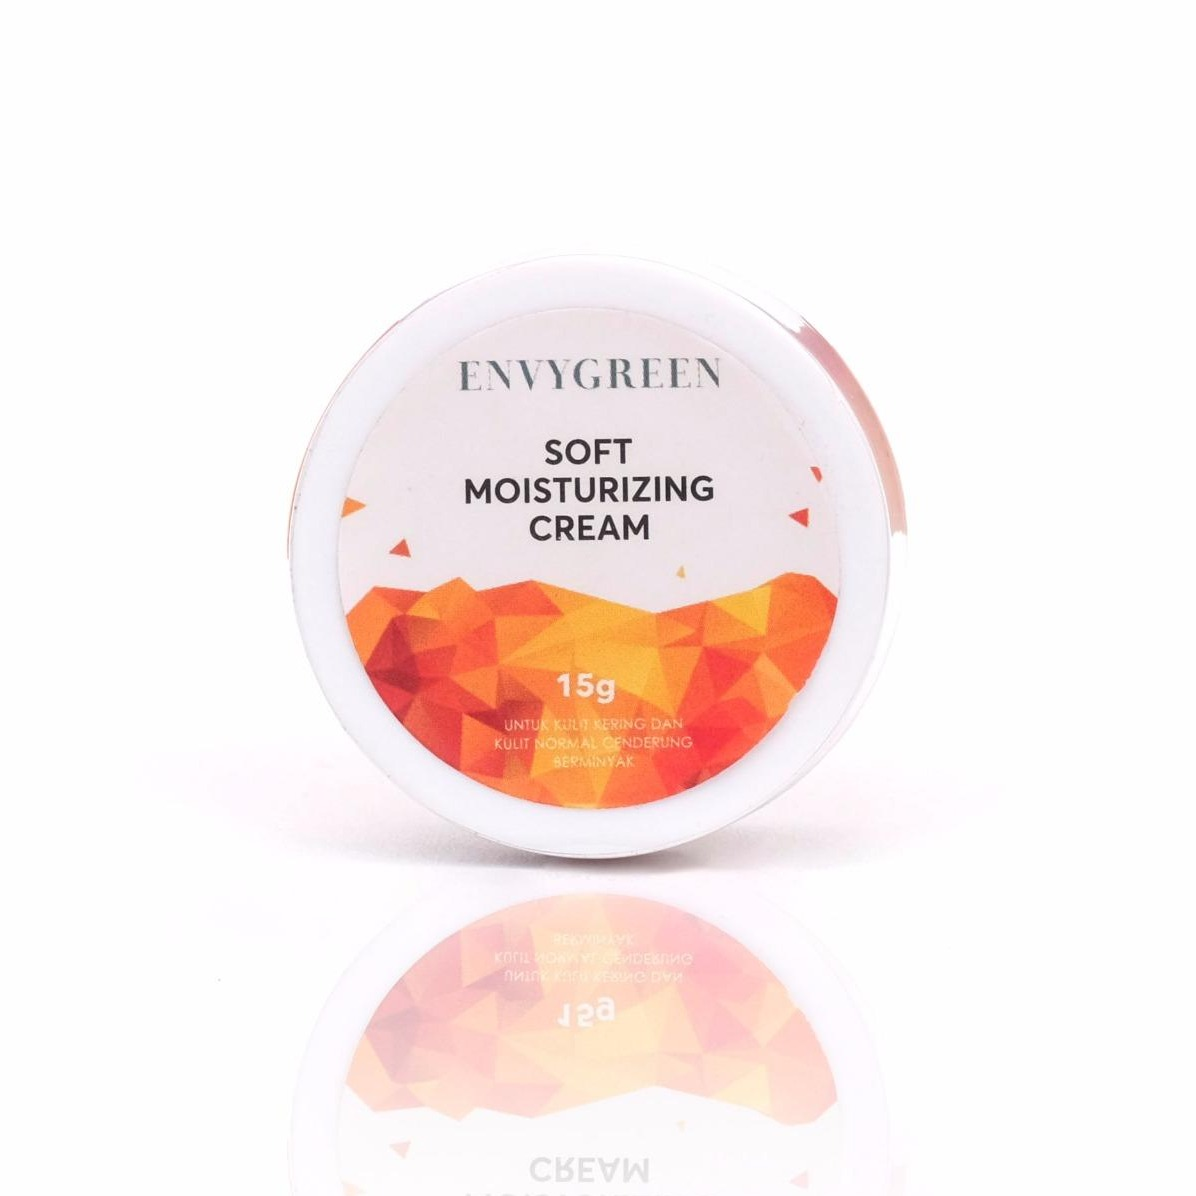 ENVYGREEN Soft Moisturizing Cream